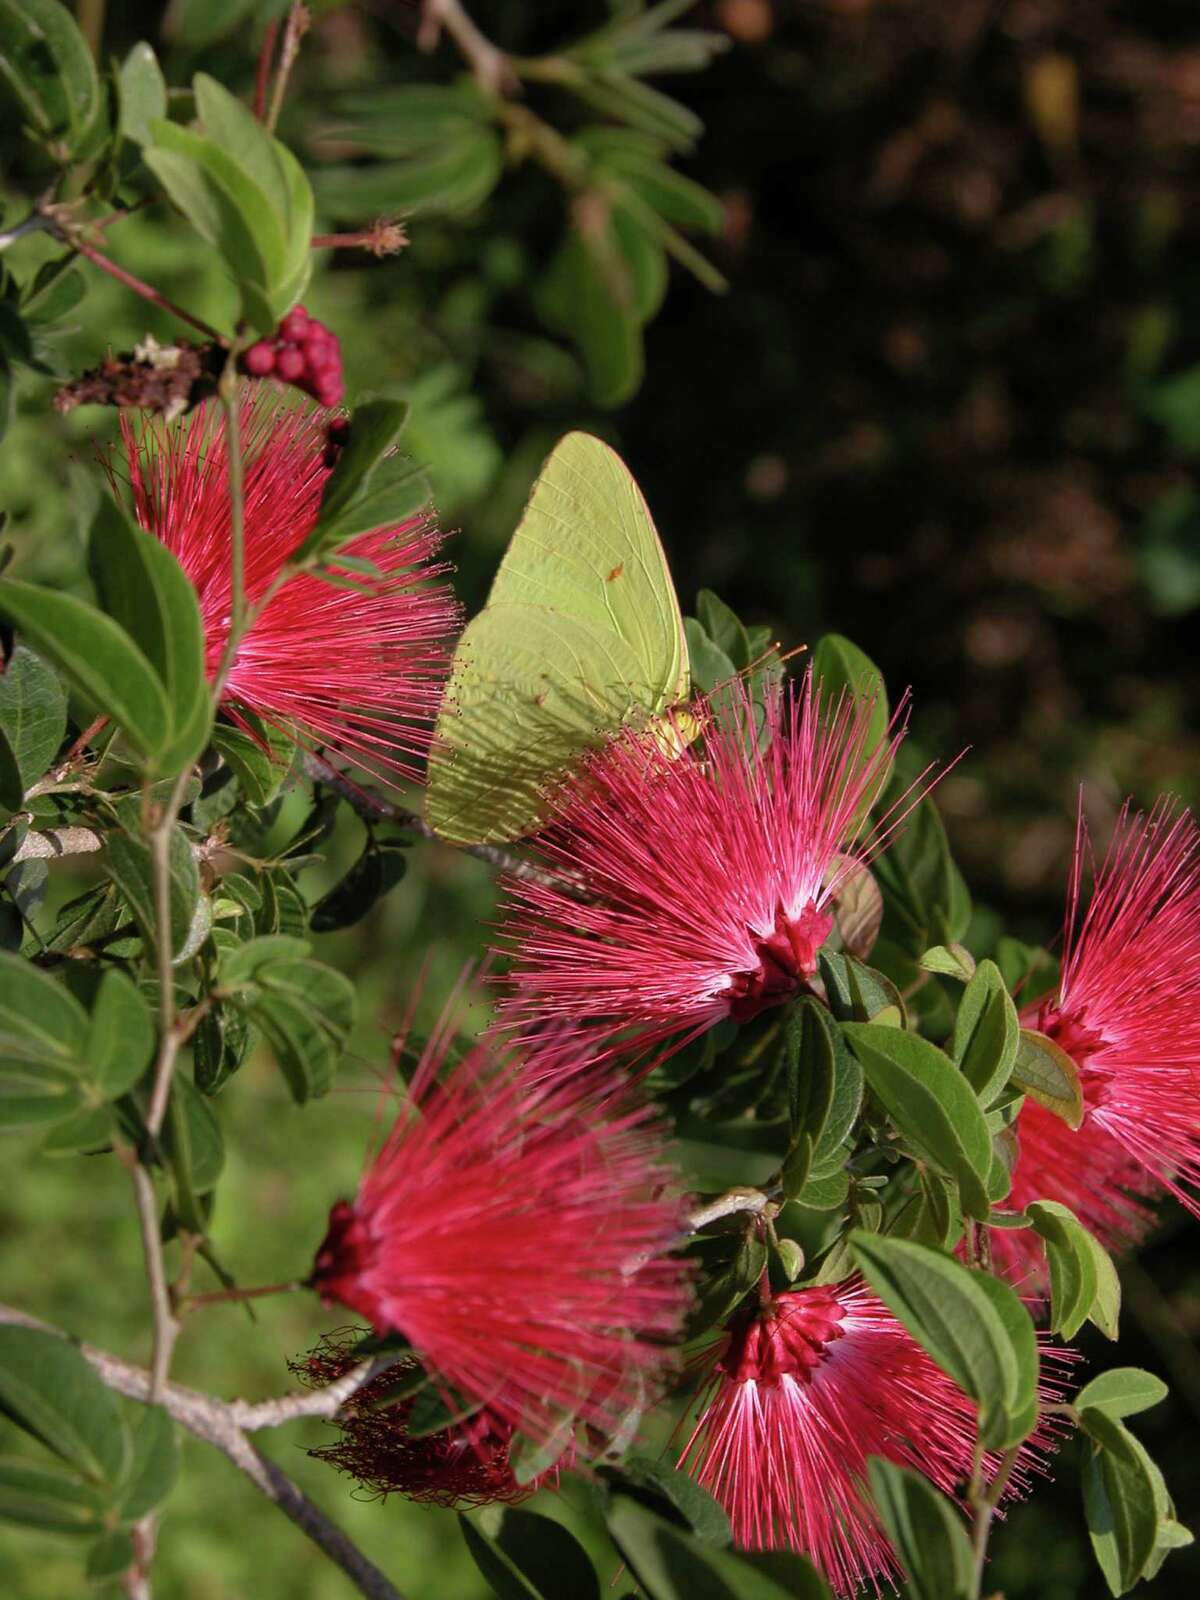 Dwarf calliandra will be available at the butterfly and hummingbird plant sale Saturday at the White Oak Conference Center.